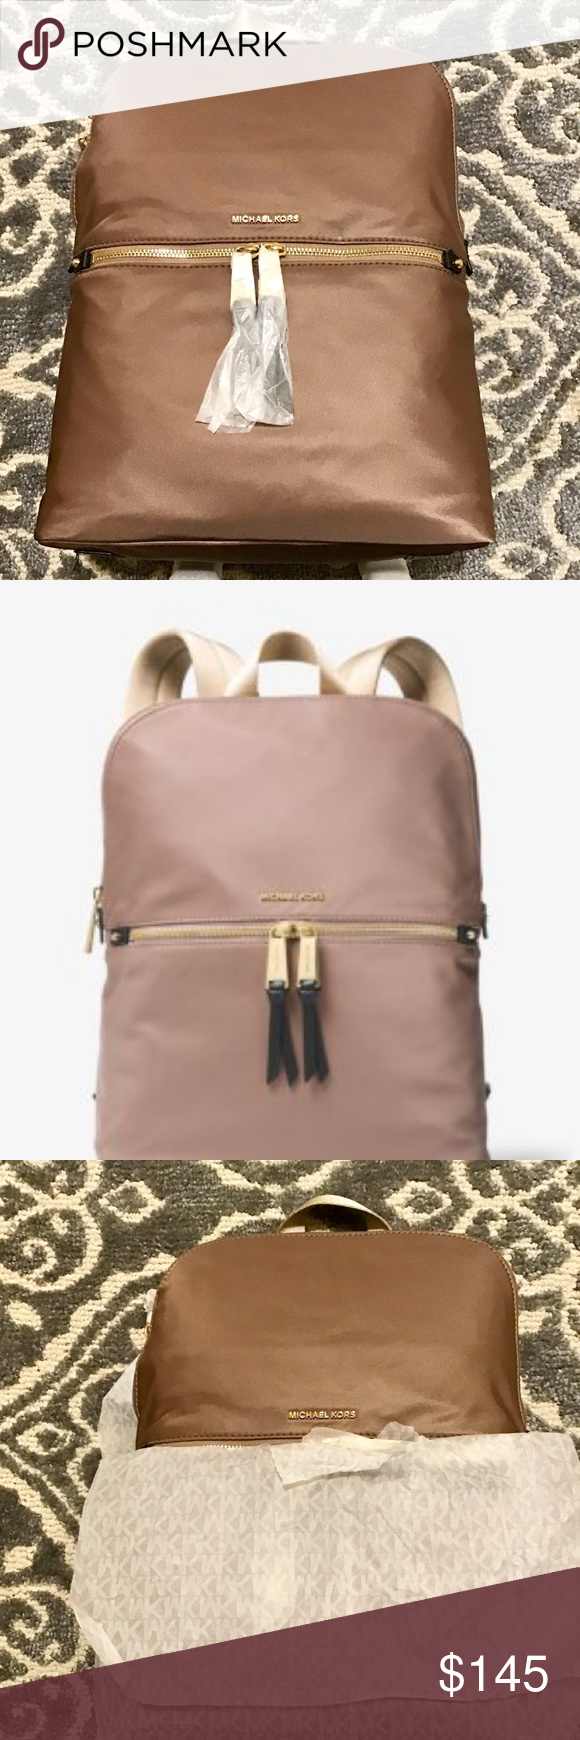 8ea1d3b52029 SOLD OUT Michael Kors Polly Nylon Backpack Polly Medium Nylon Backpack  Store Style # 30T8GP5B2C COLOR